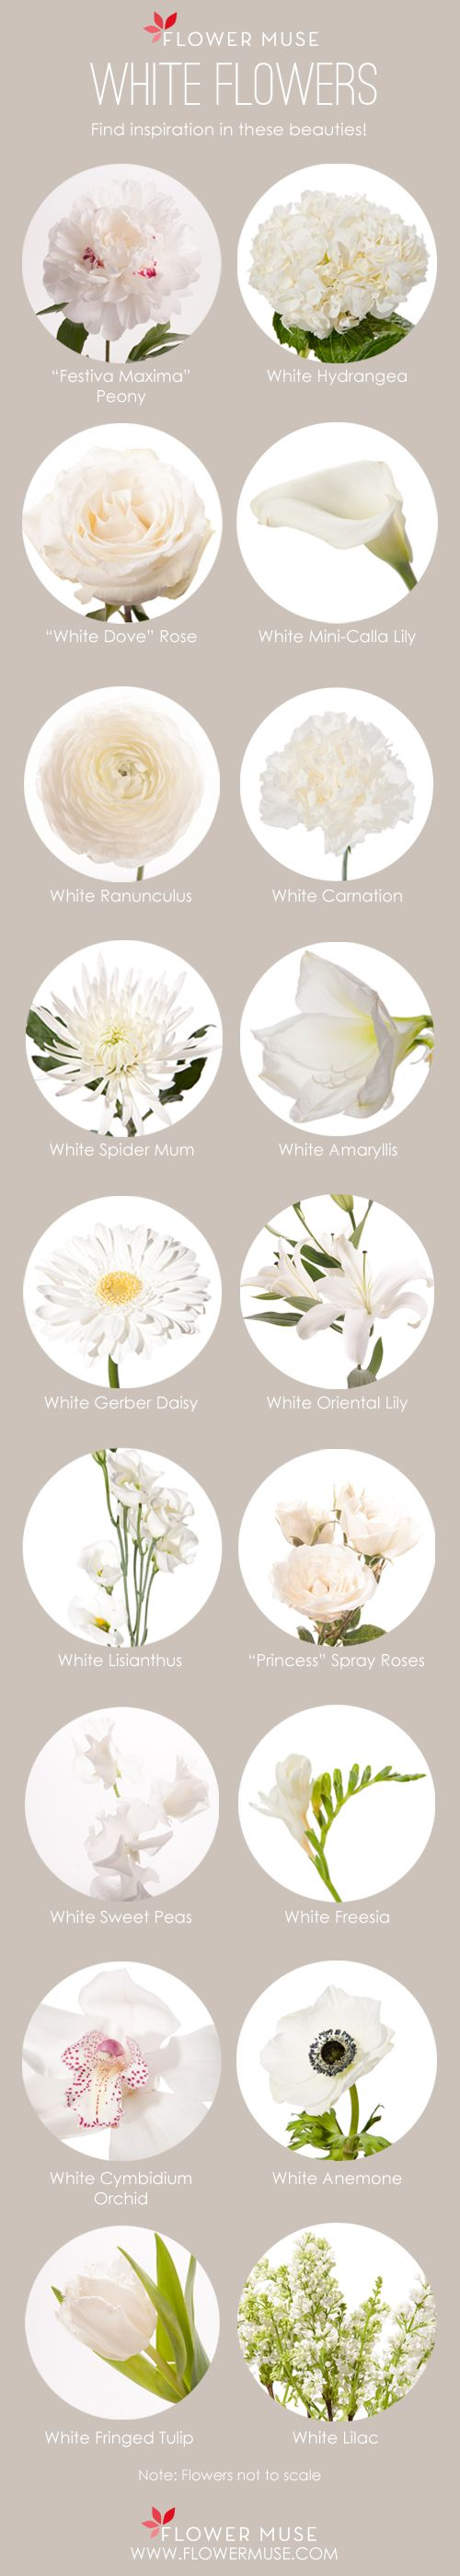 Flower Muse Our Favorite: White Flowers http://www.flowermuse.com/blog/our-favorite-white-flowers/